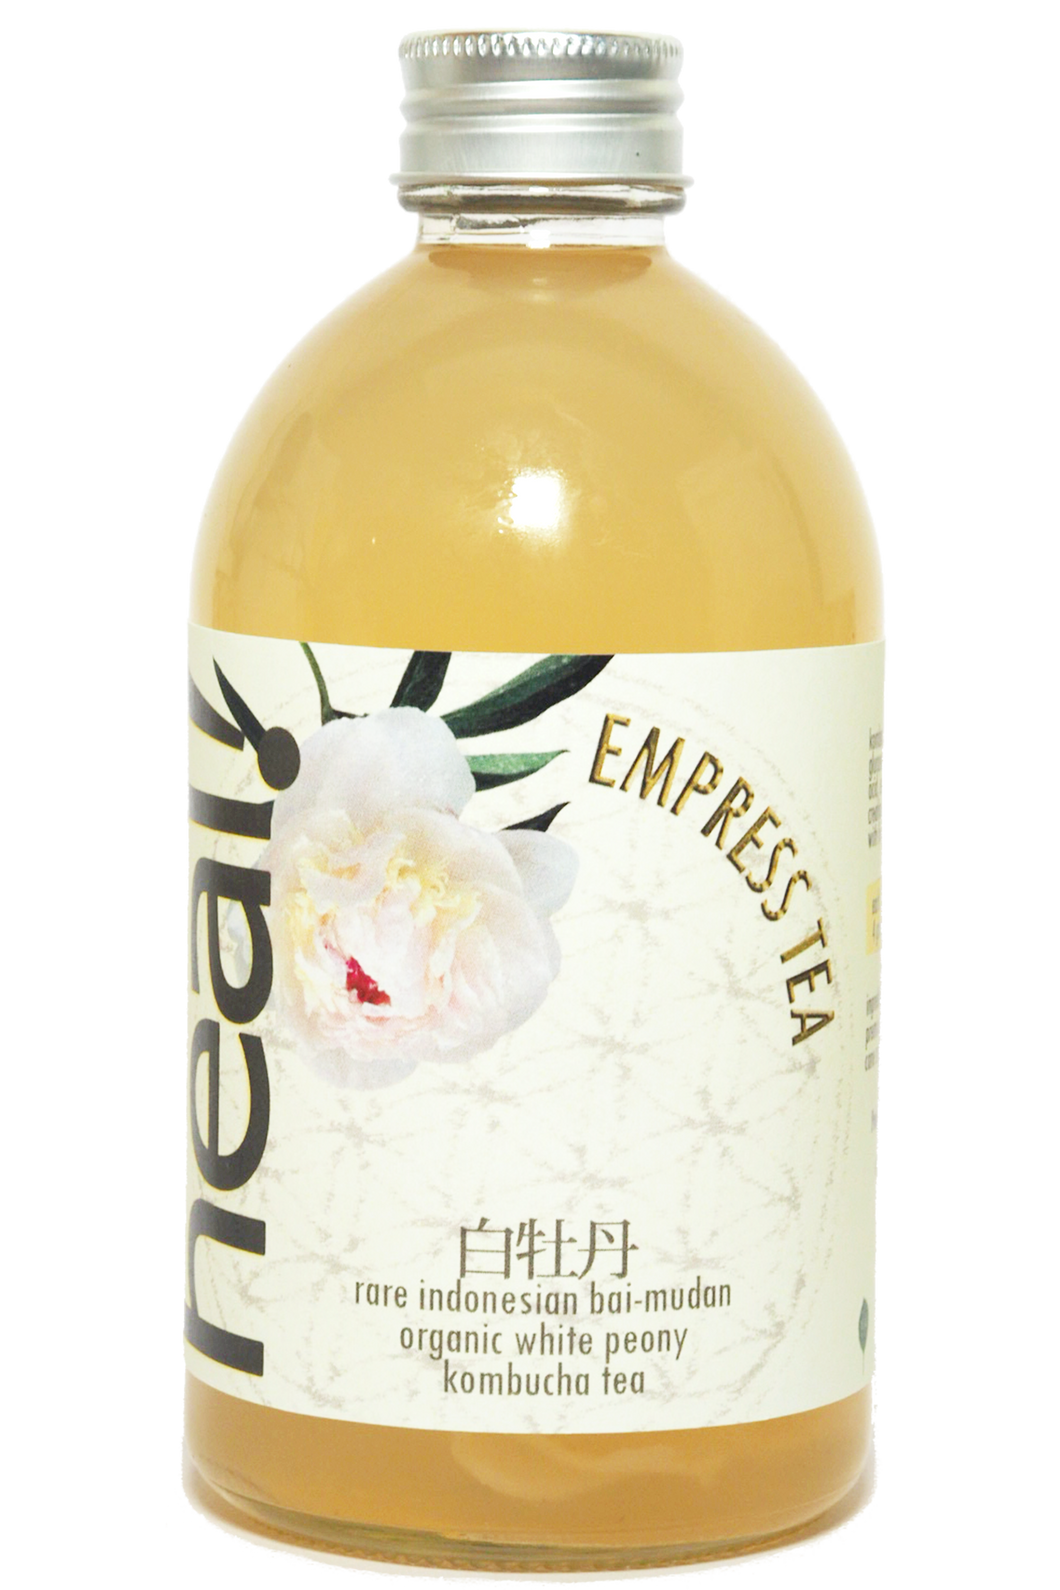 Empress Tea Kombucha - Limited Edition